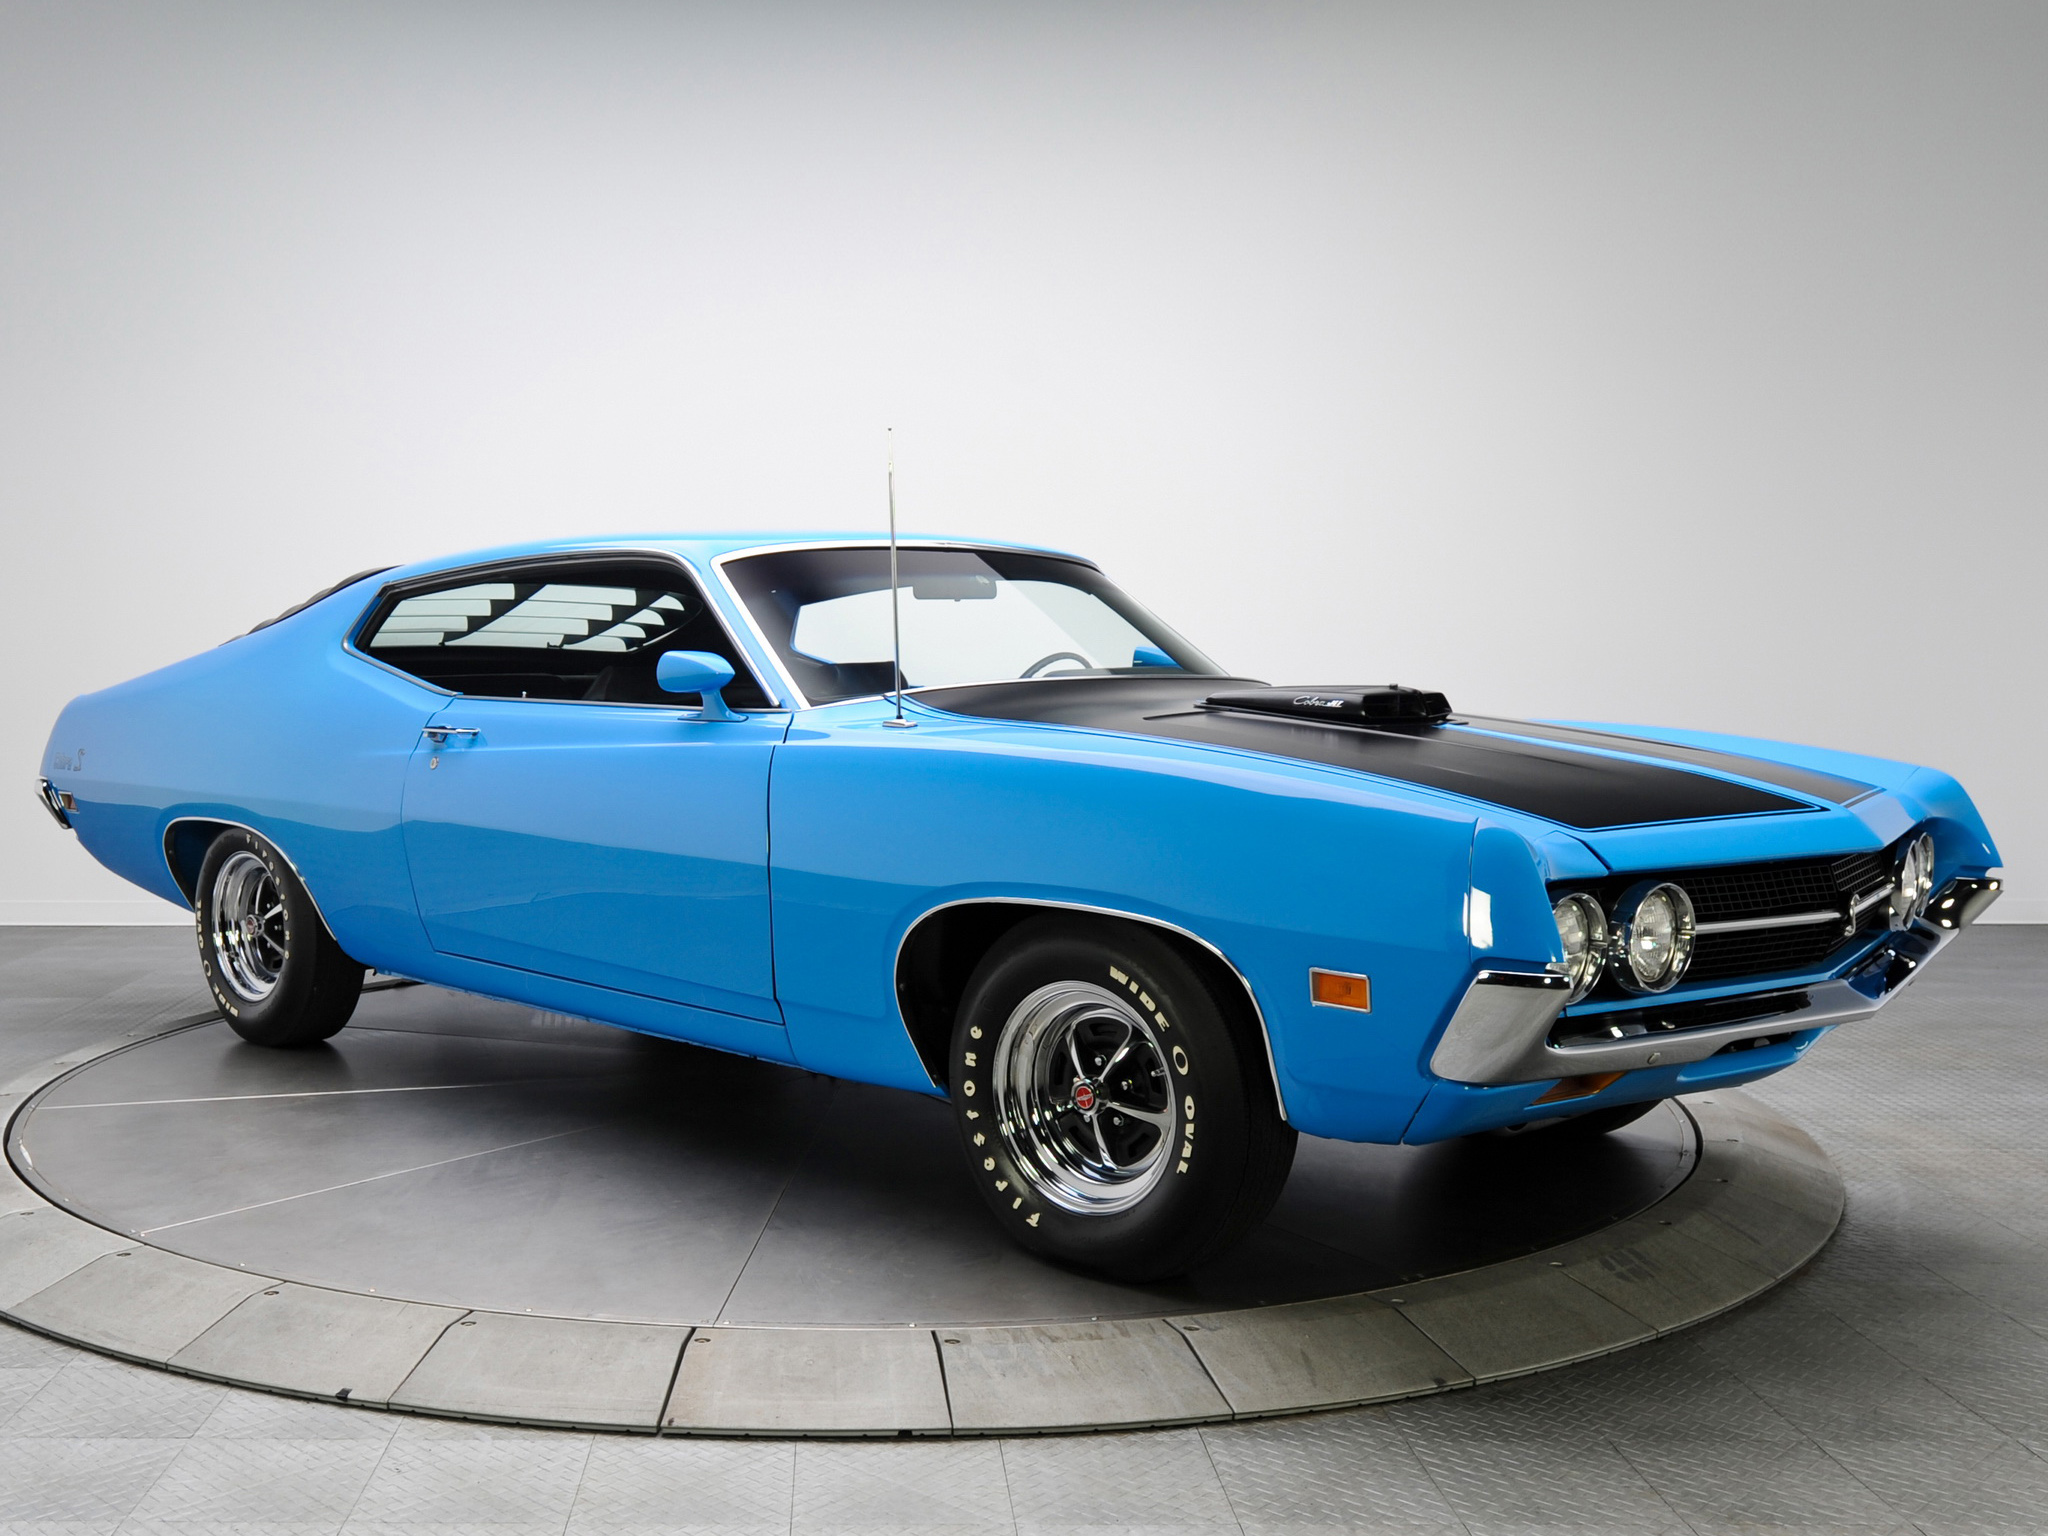 2048x1536 - Ford Torino Wallpapers 17